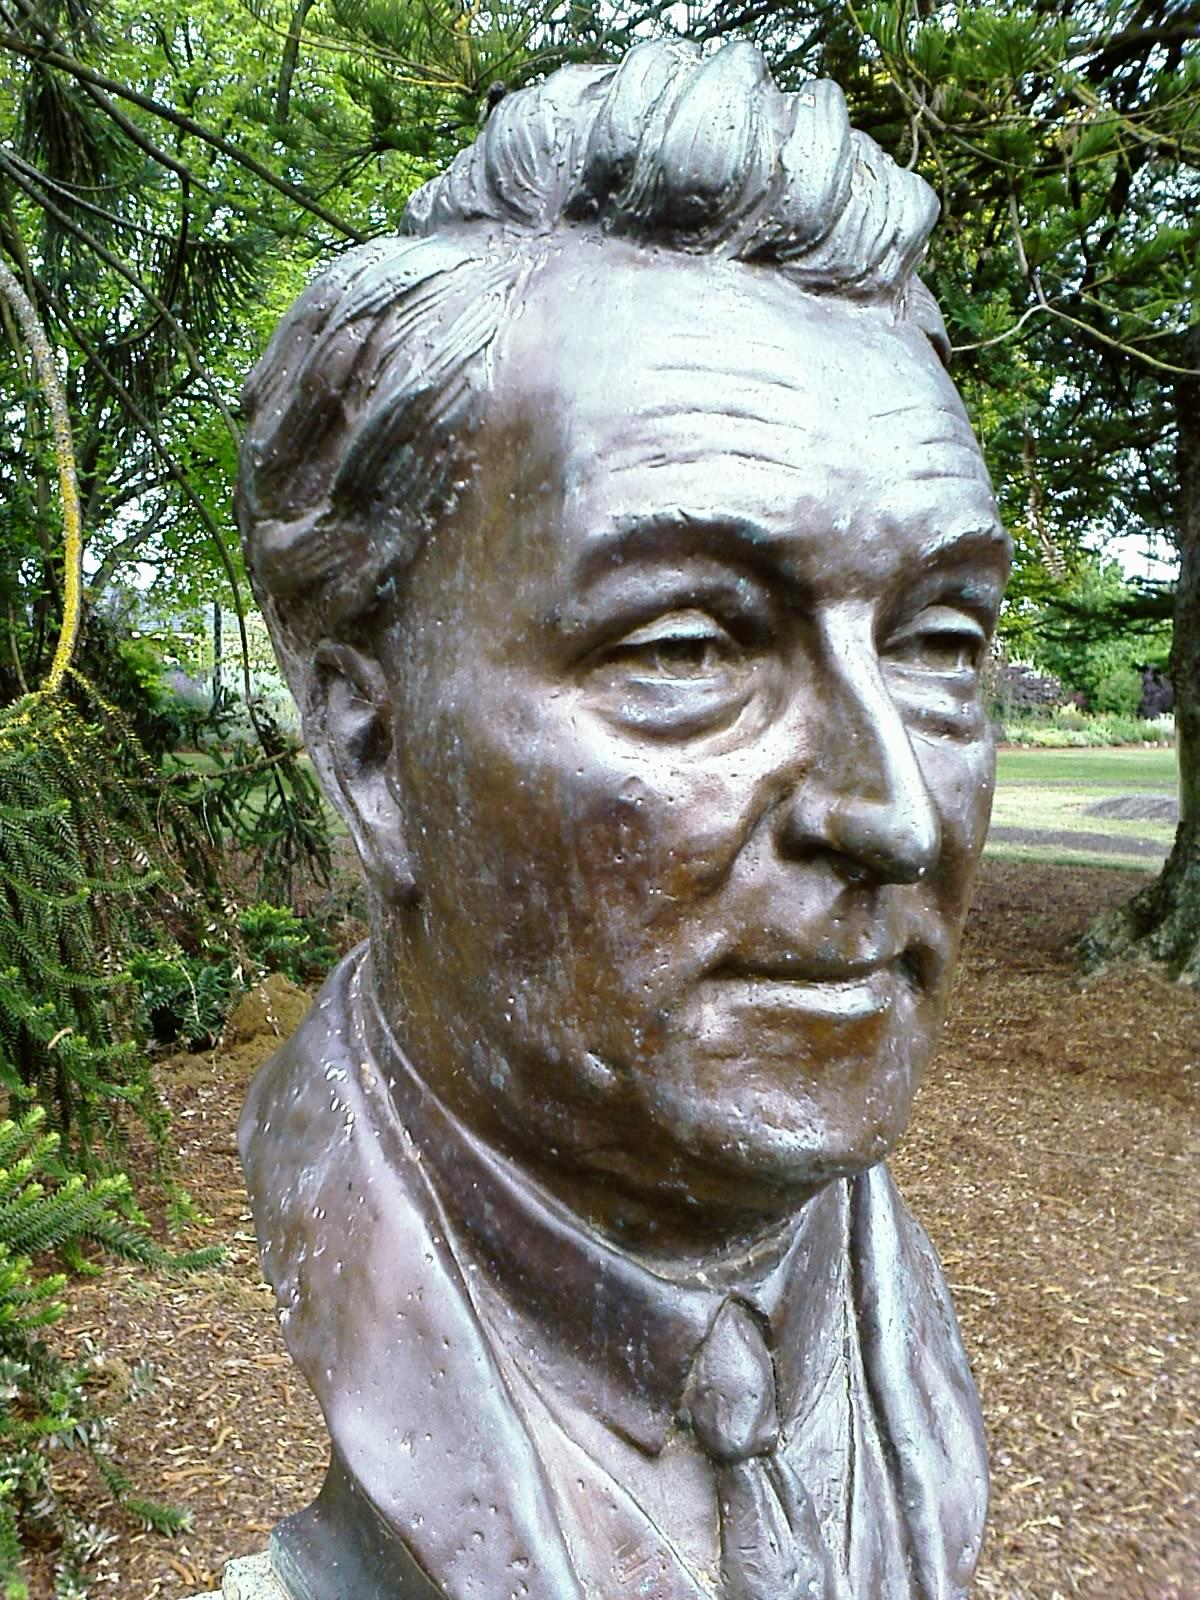 https://upload.wikimedia.org/wikipedia/commons/7/72/Joseph_Lyons_bust.jpg